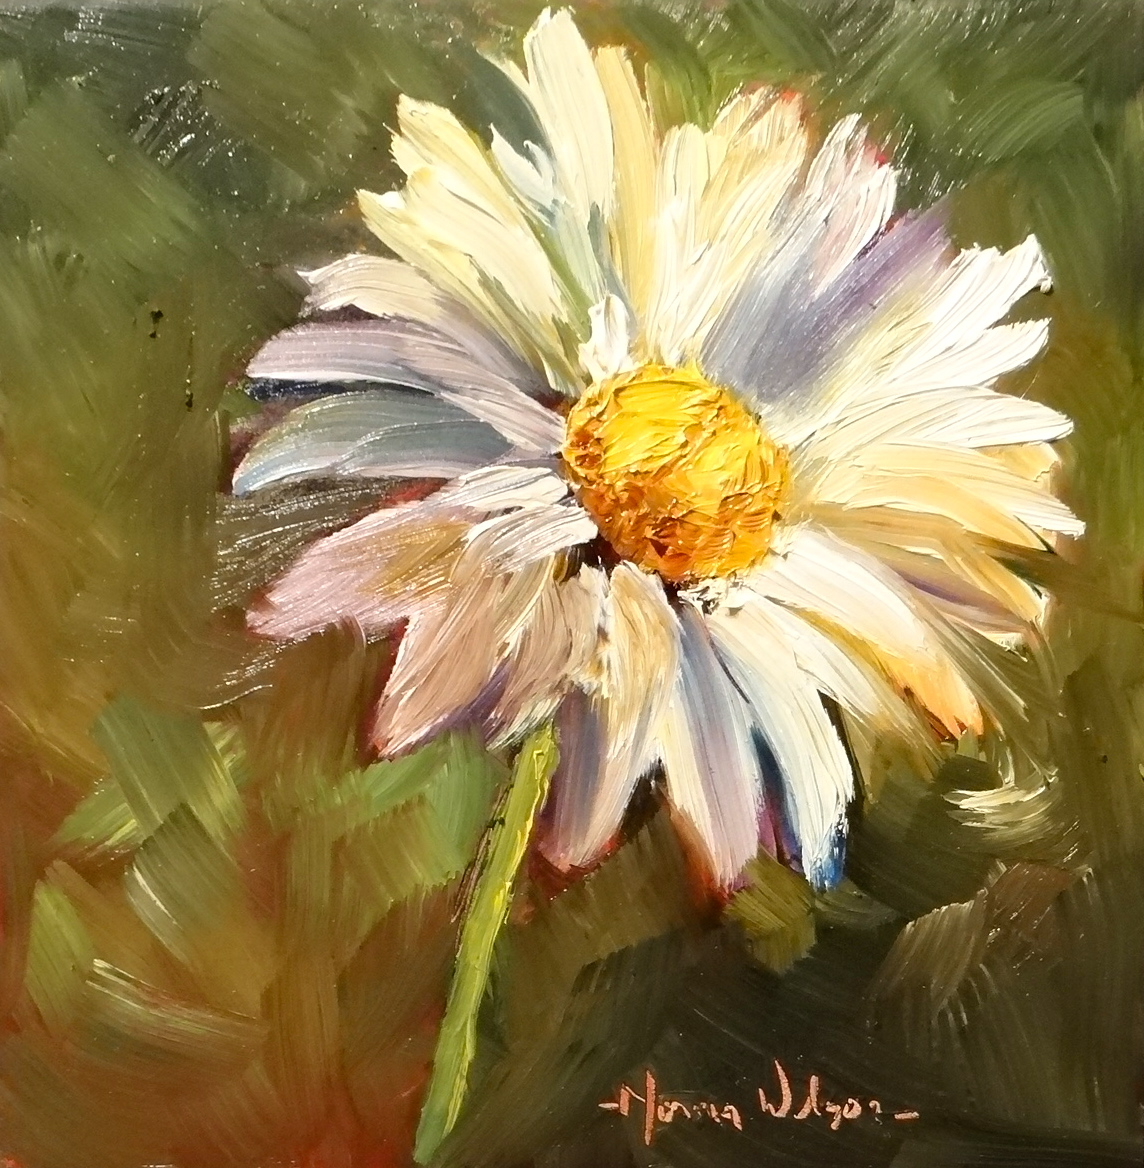 Norma wilson art daisy delight floral still life painting for Flower paintings on canvas